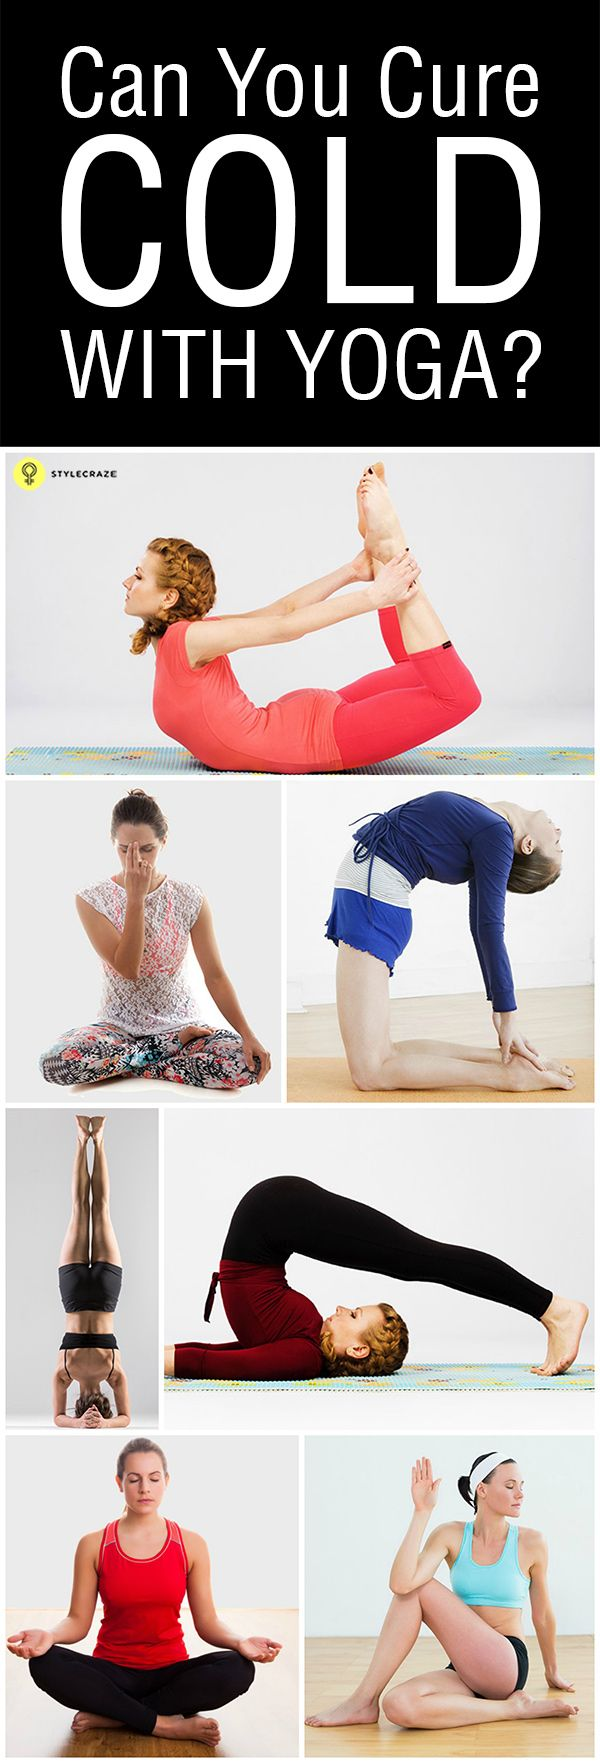 Yoga helps cure and prevent many kinds of diseases and conditions. Did you know that yoga can also help treat common conditions like cold ...